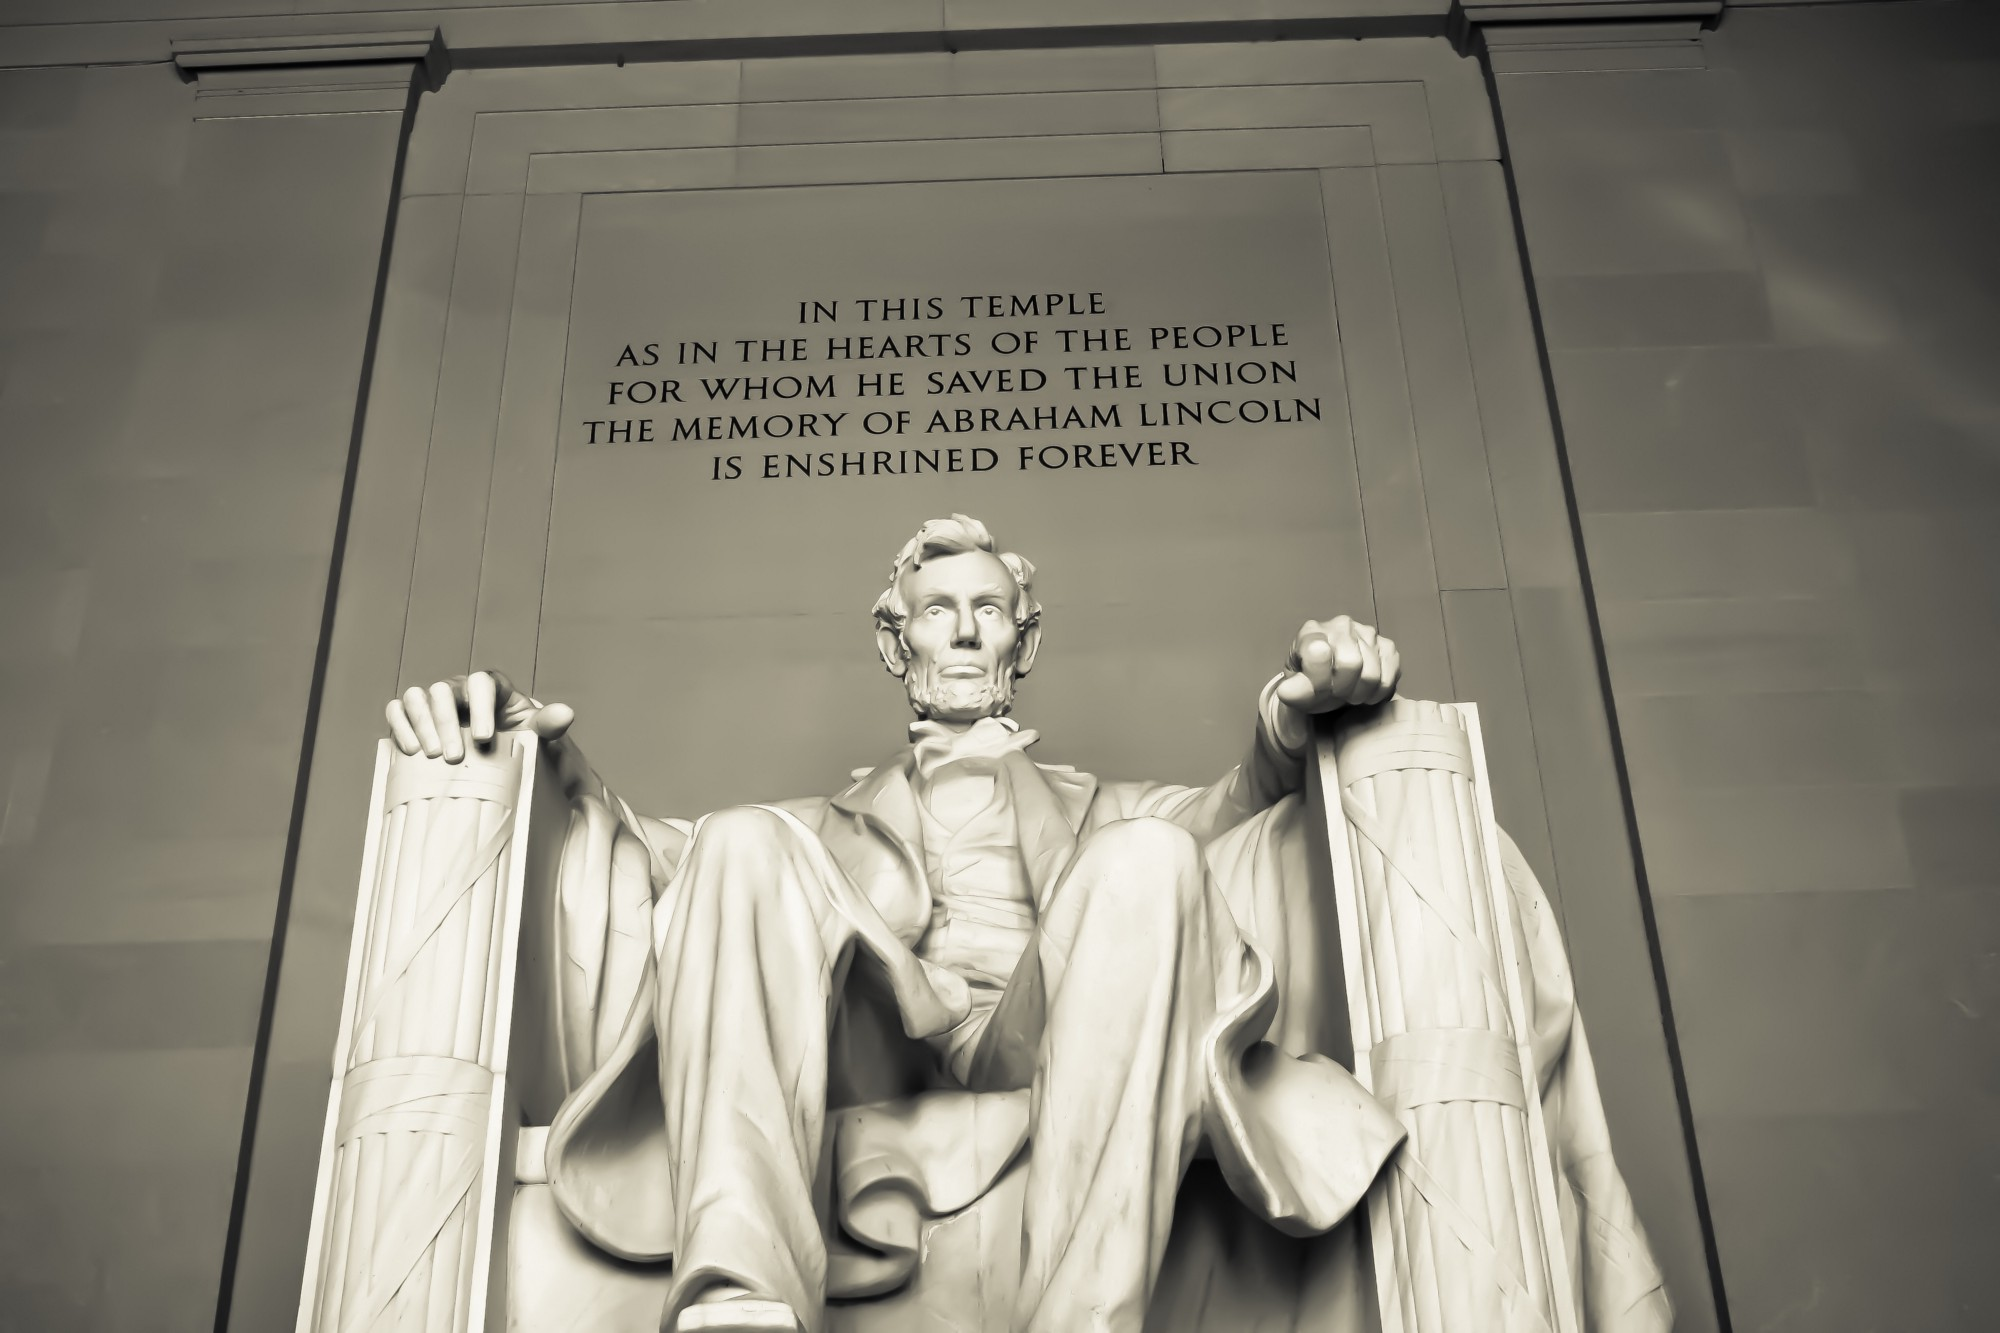 Imposing figure of Abraham Lincoln in the Lincoln Memorial.